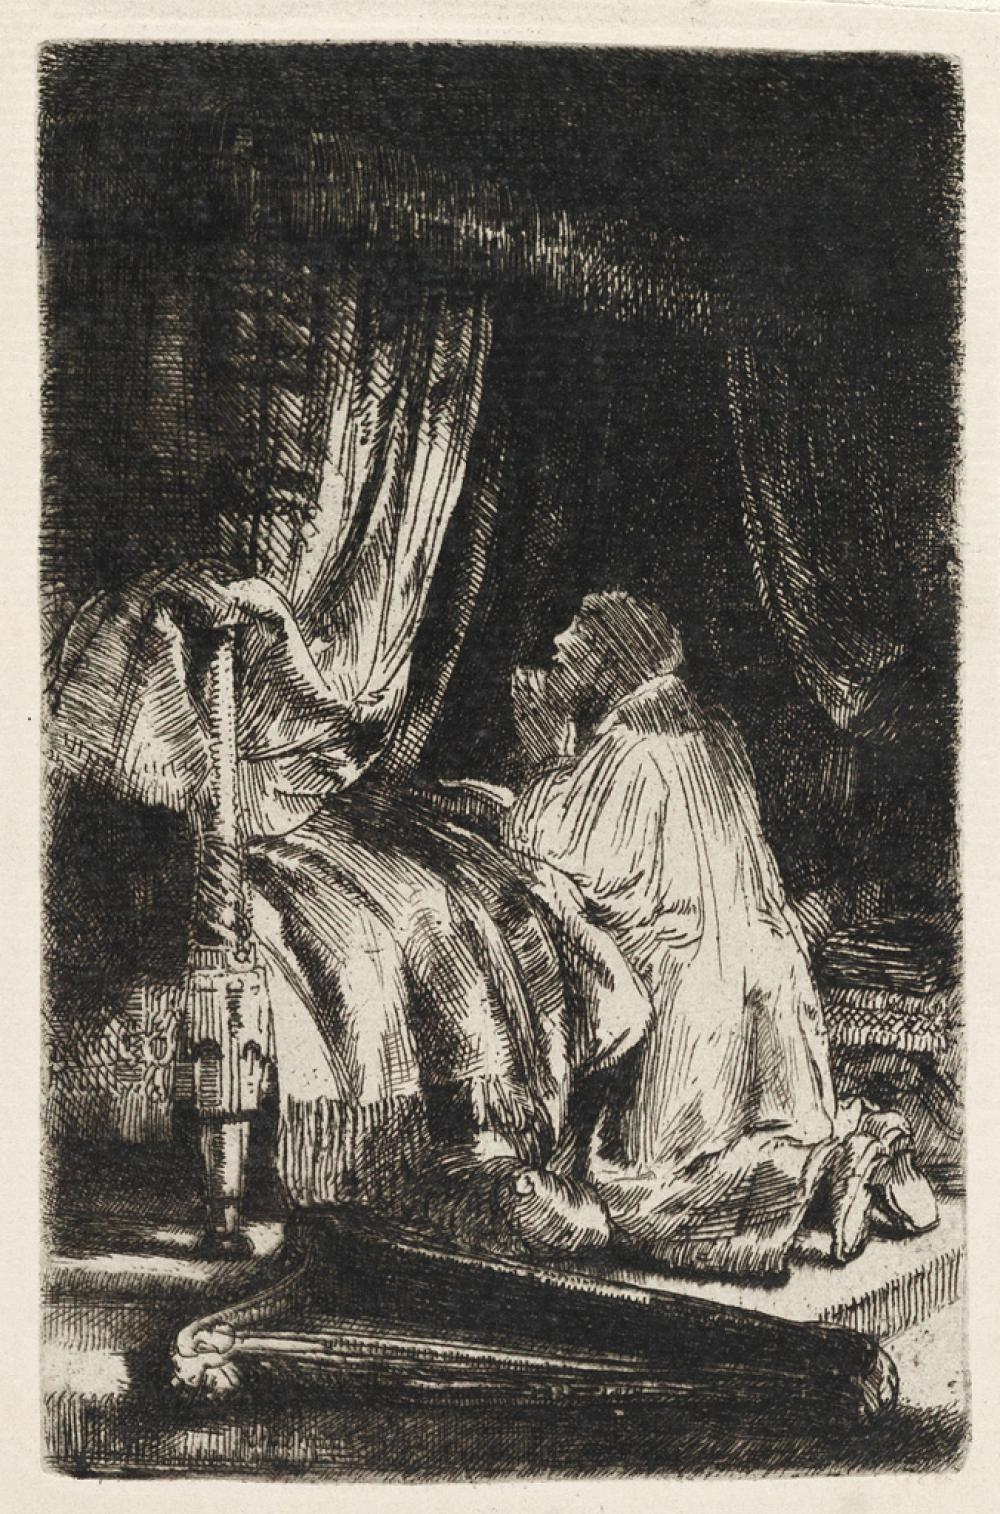 REMBRANDT VAN RIJN David at Prayer.